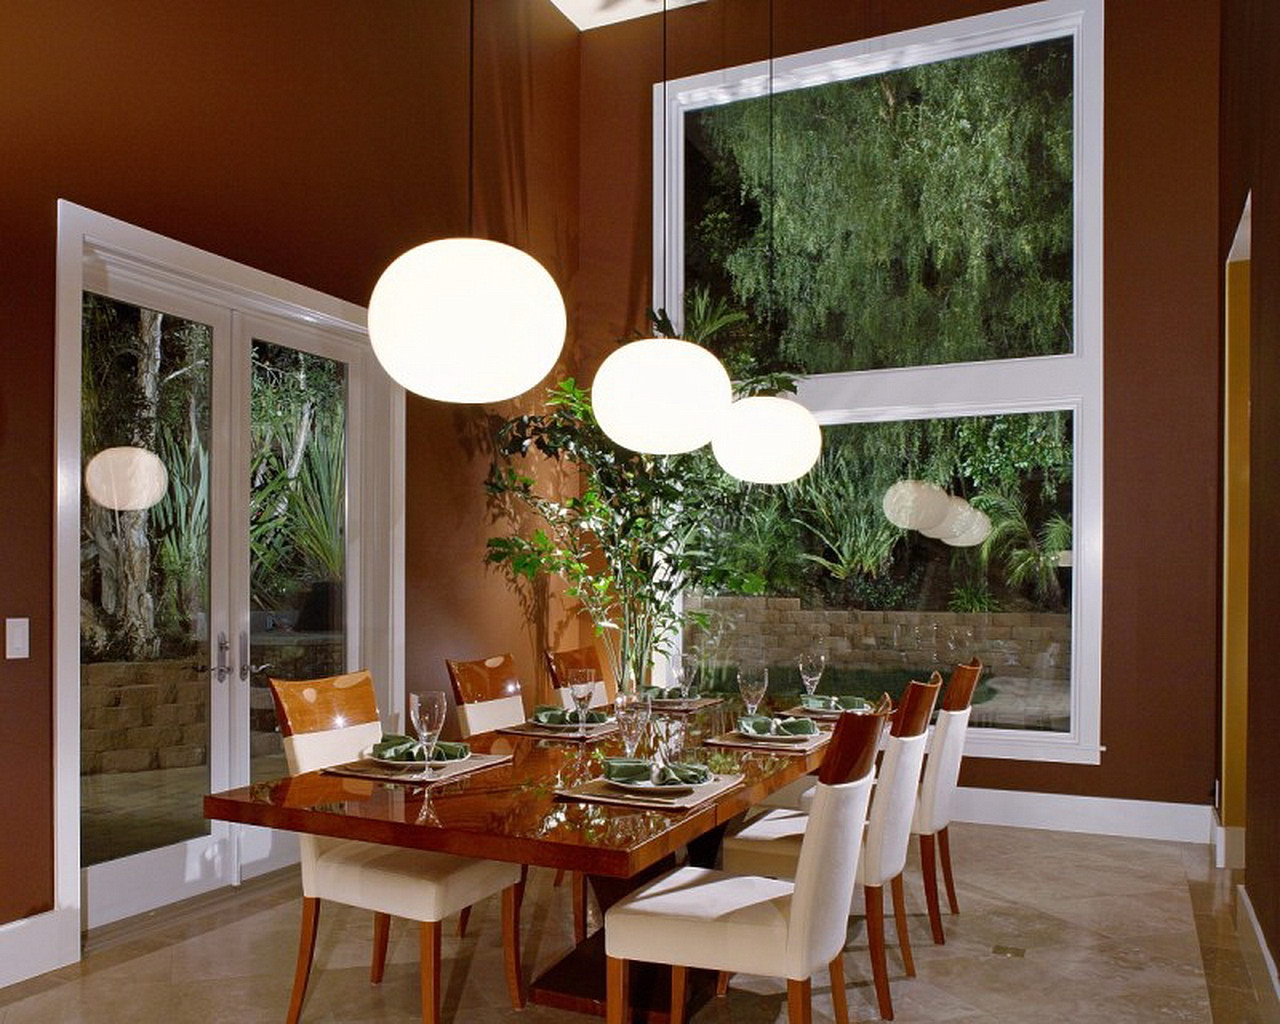 Best ideas about Dining Room Design Ideas . Save or Pin 79 handpicked dining room ideas for sweet home Interior Now.